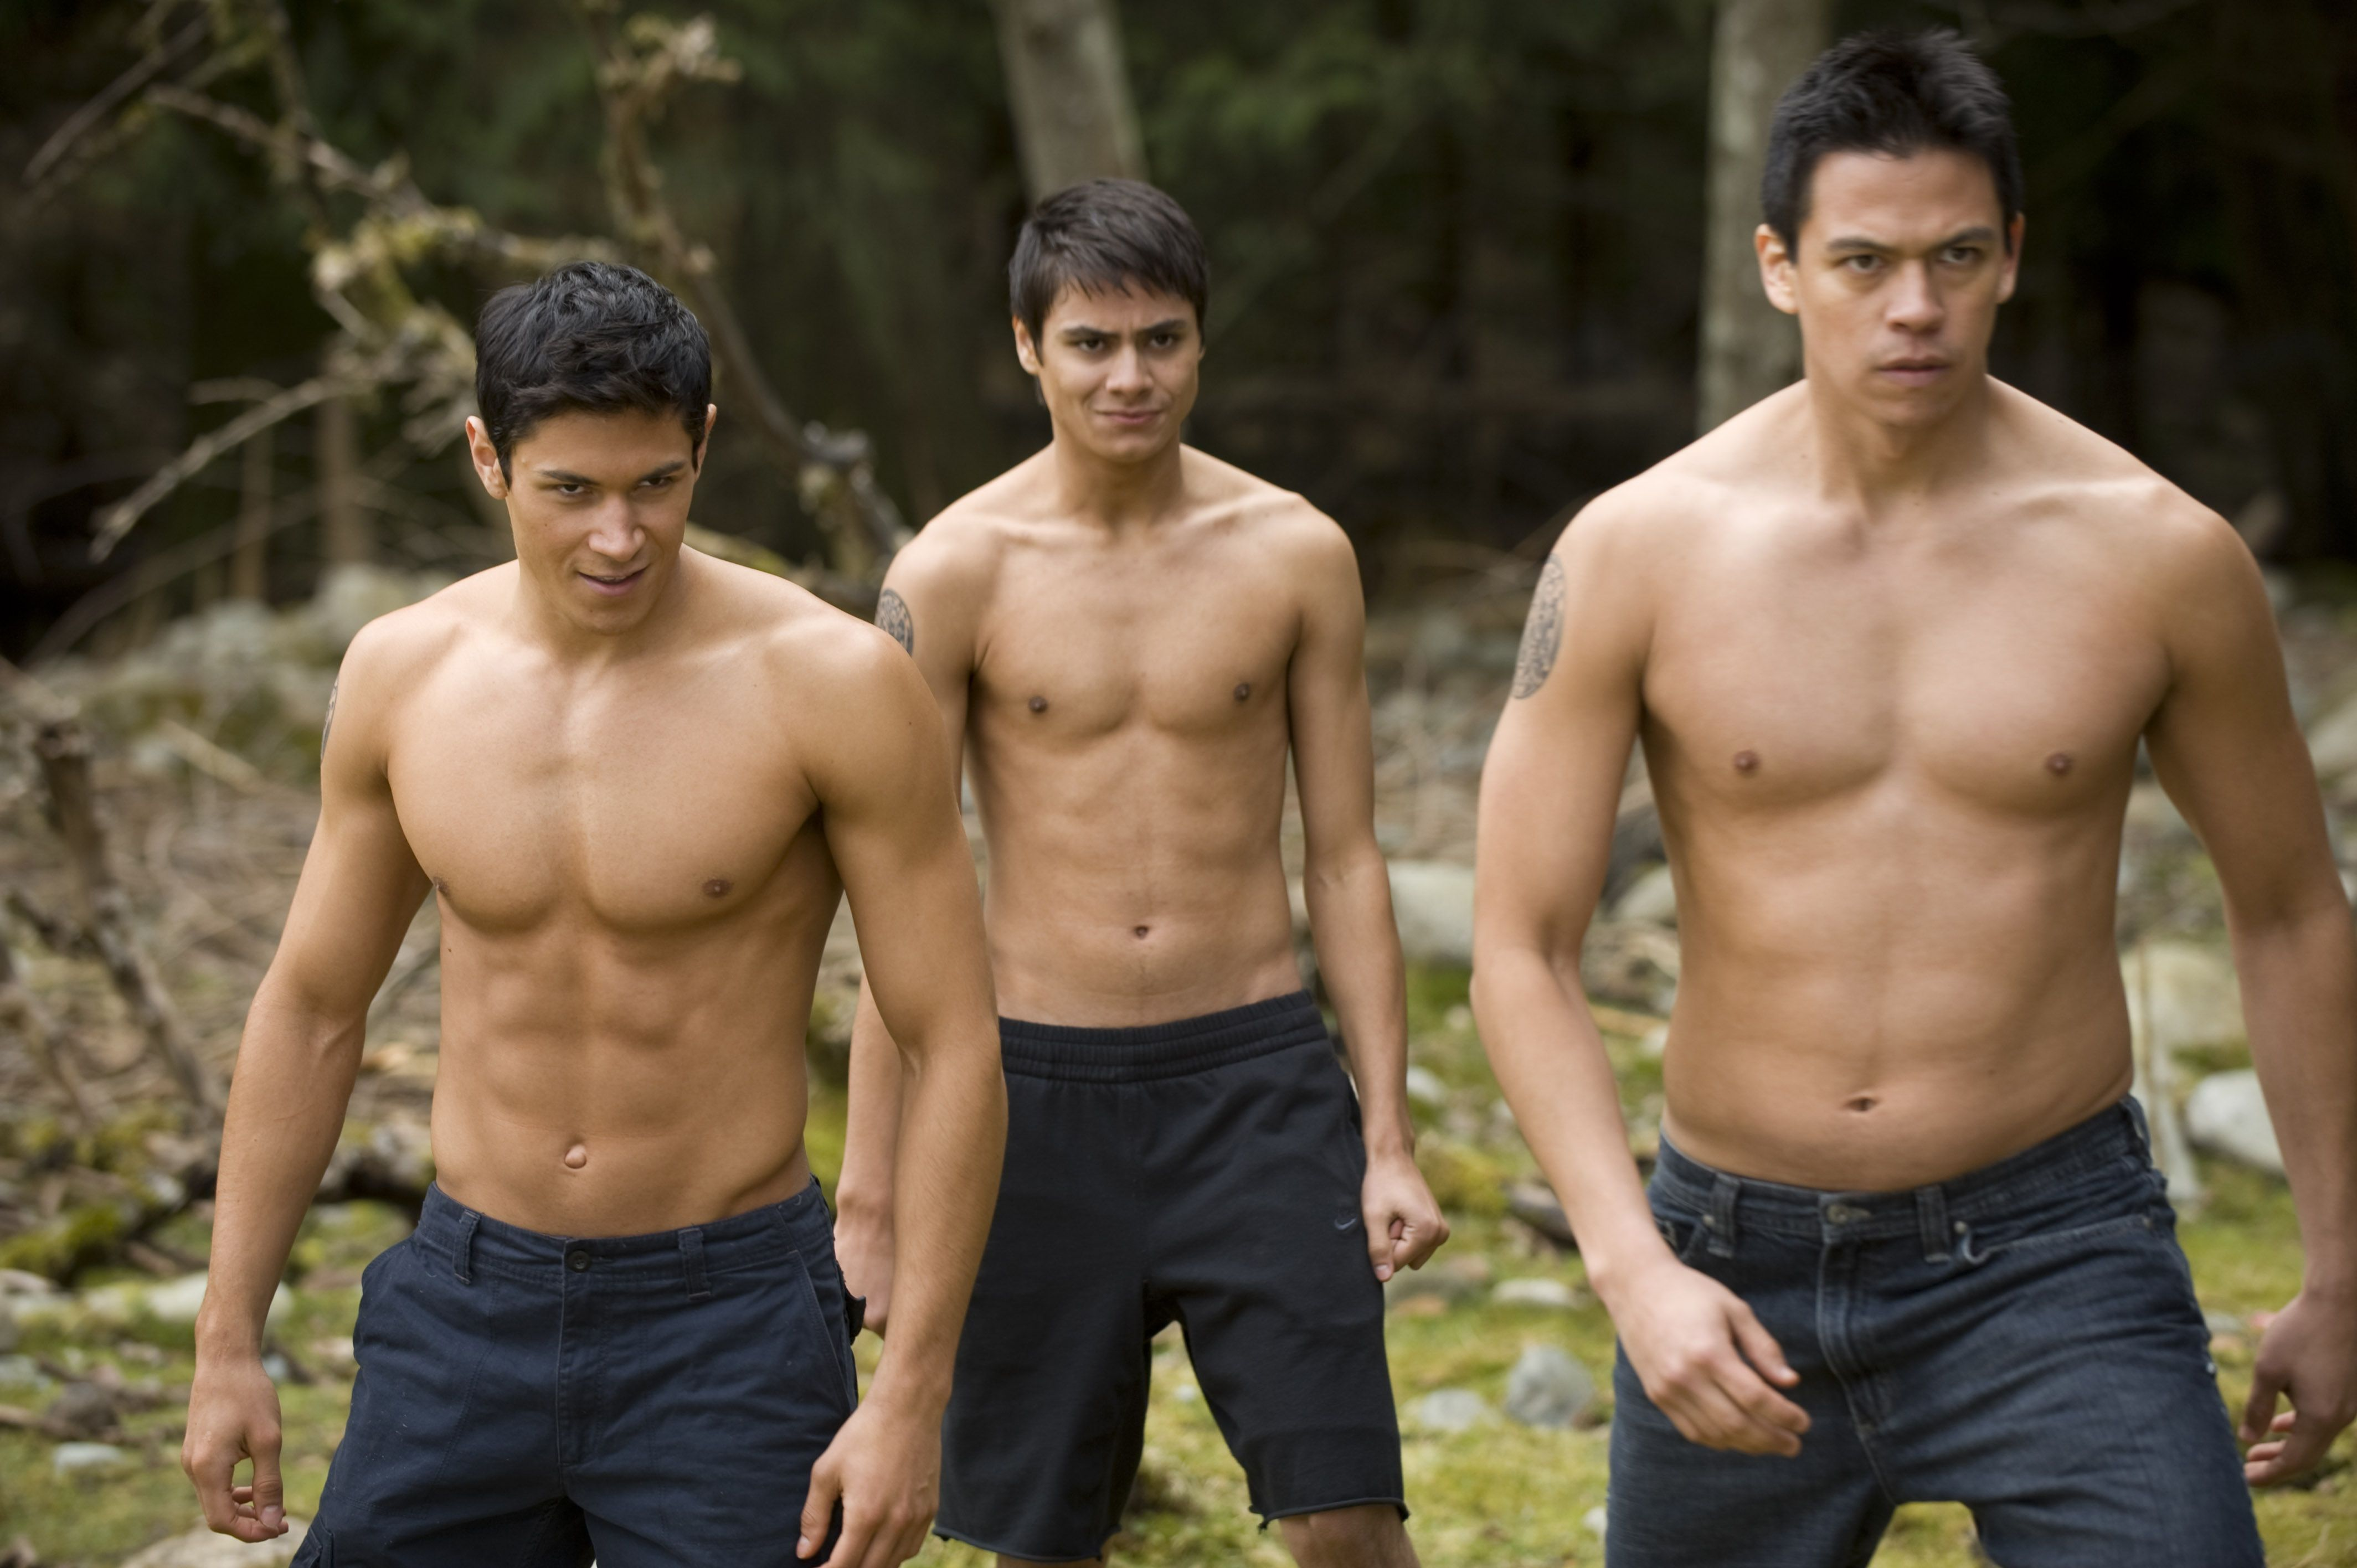 Paul, Embry and Sam from The Wolfpack - The Twilight Saga